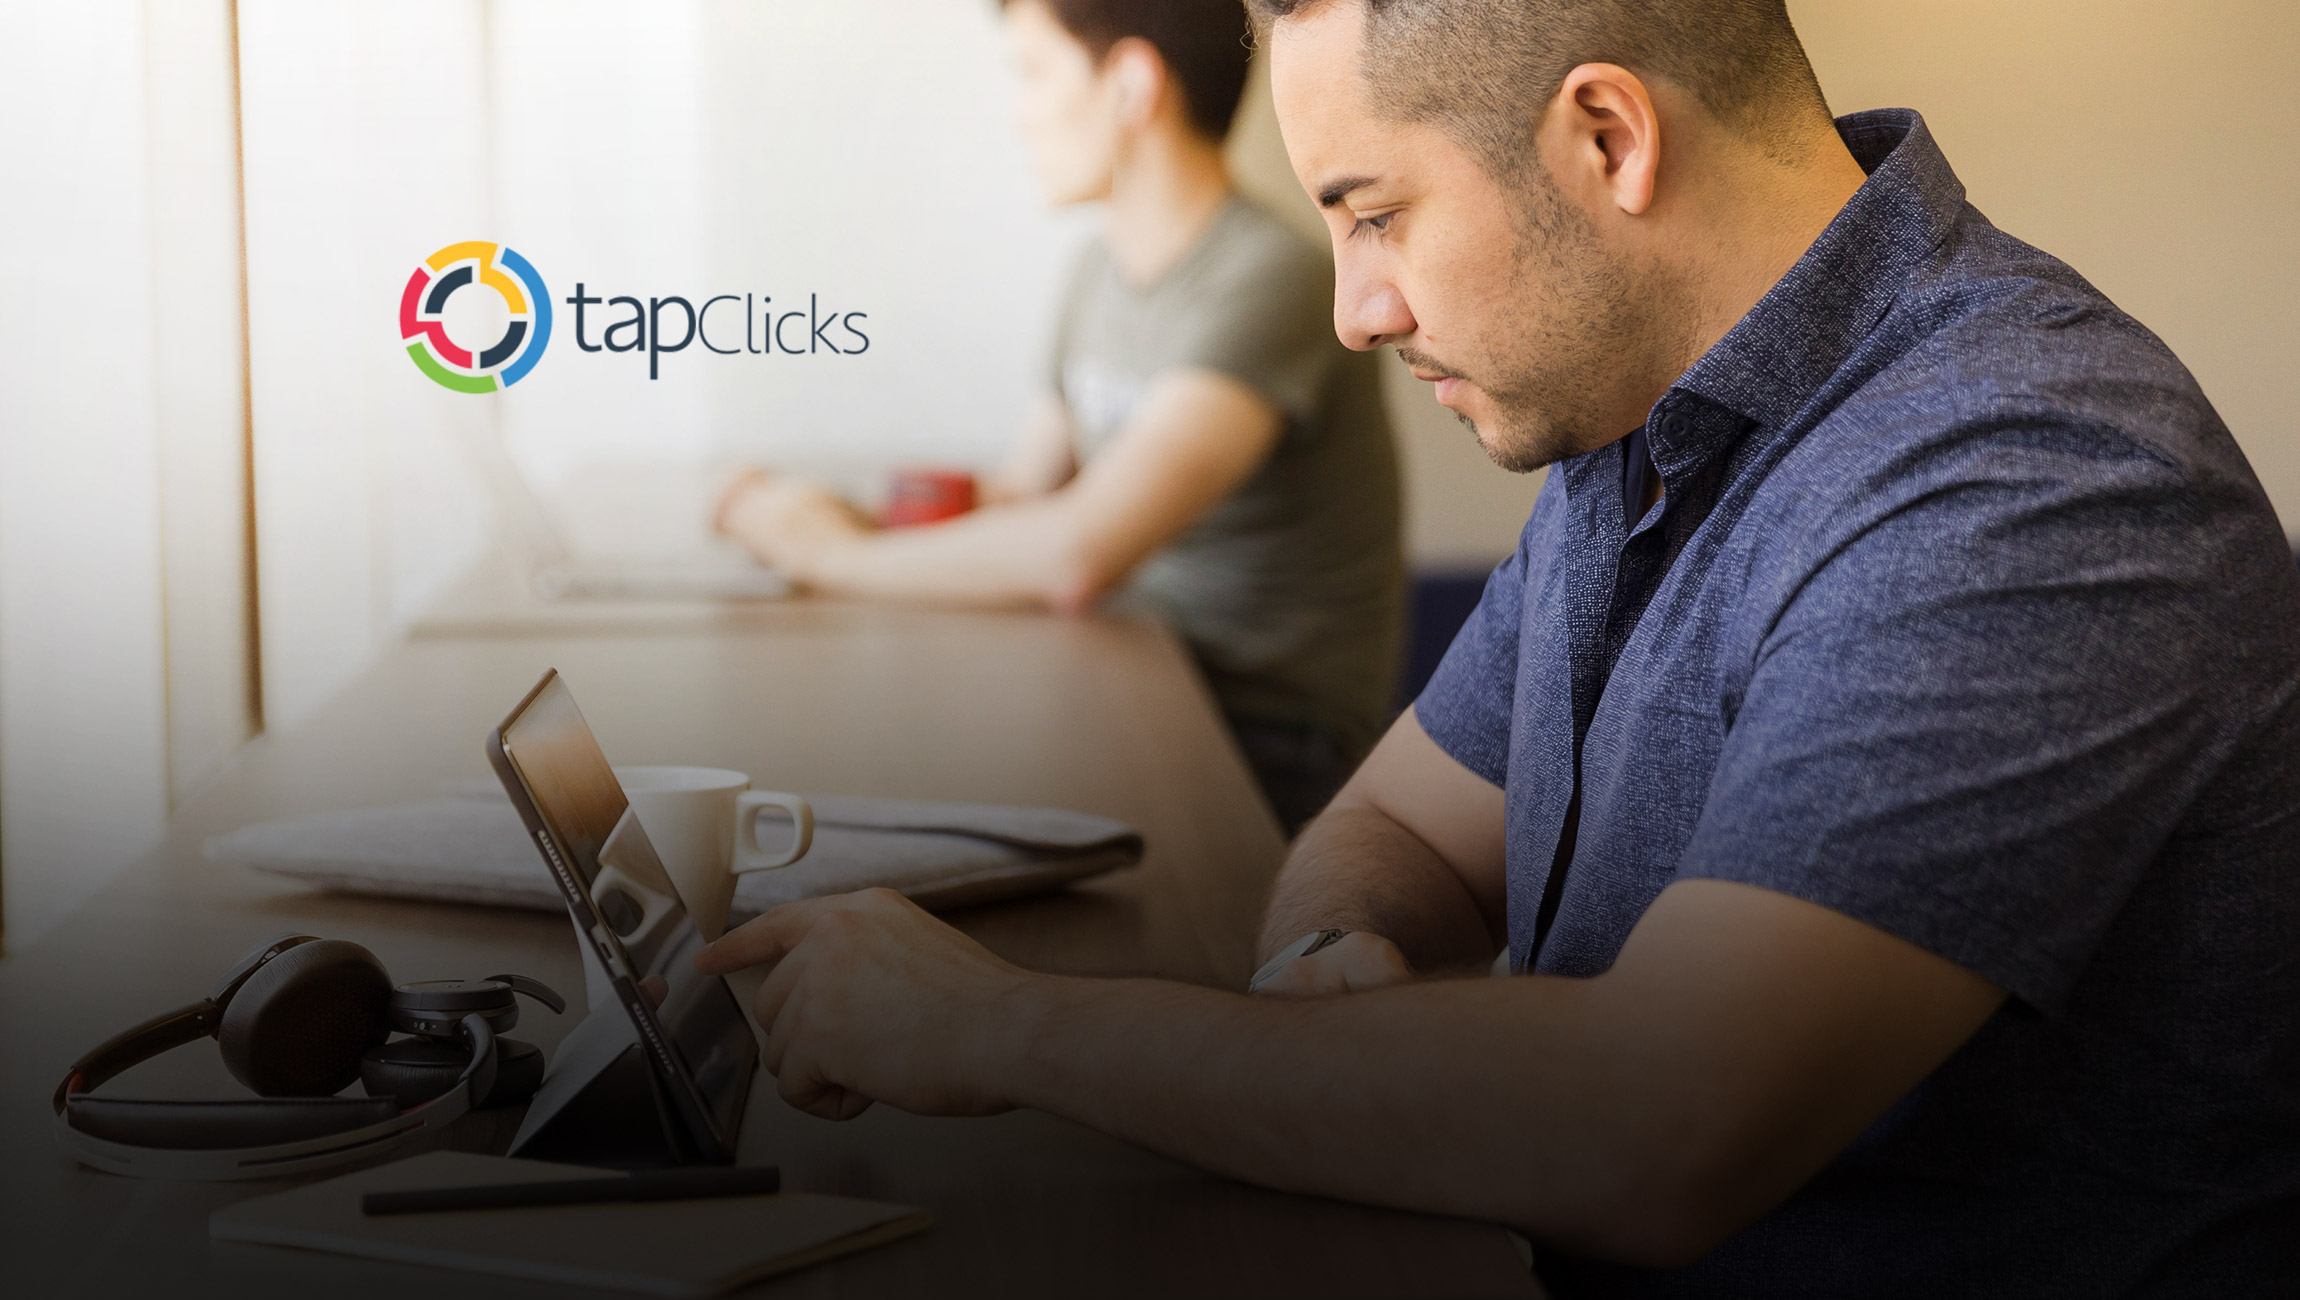 TapClicks Acquires AdStage to Infuse Marketing Intelligence into its Unified Marketing Platform